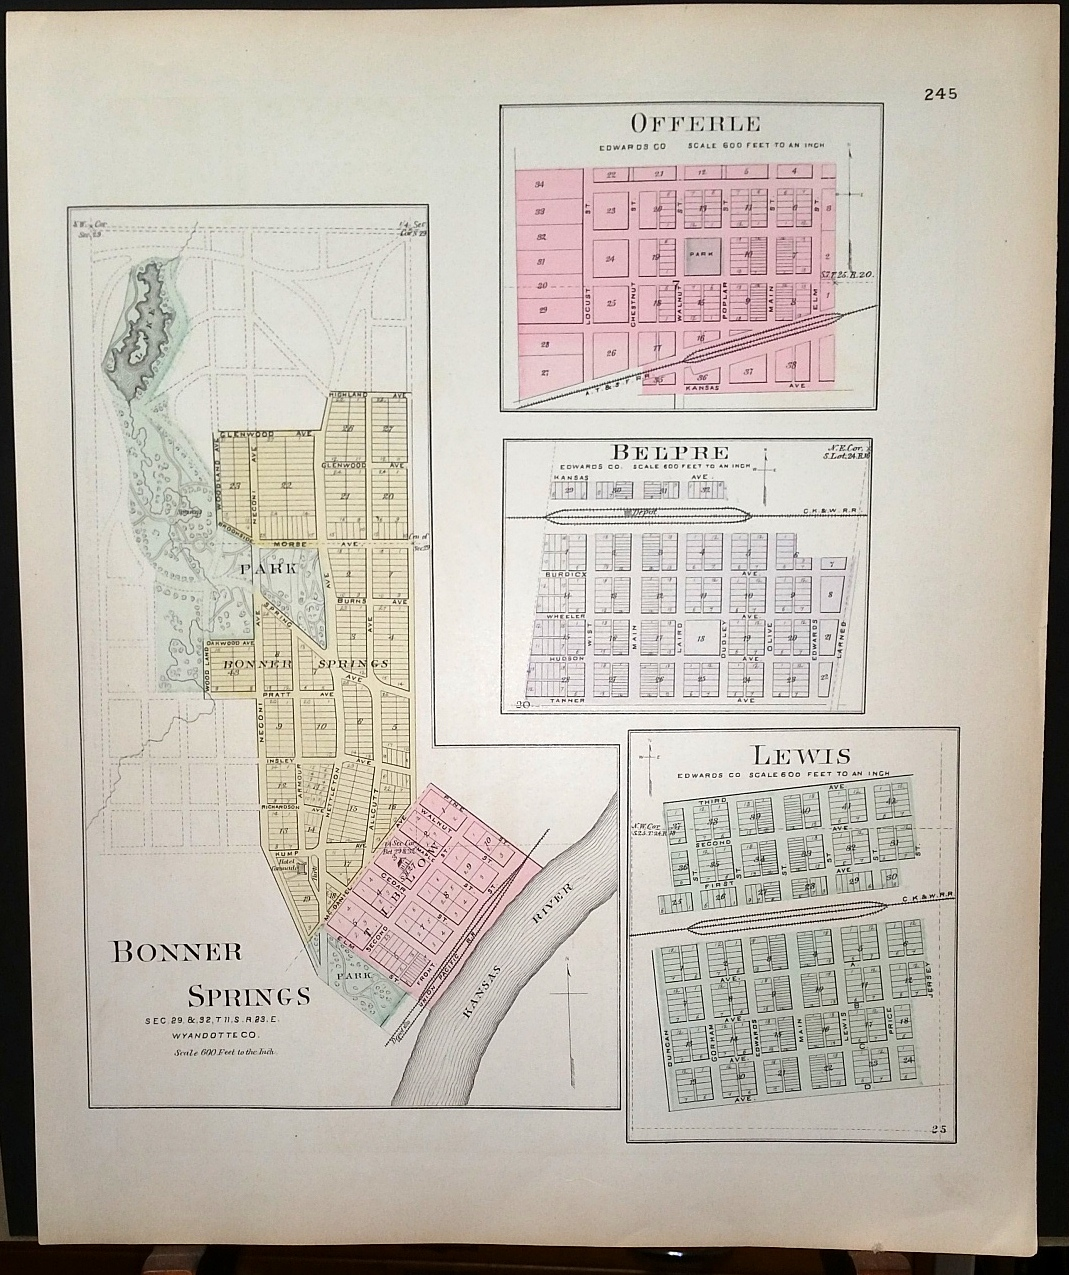 Image for [Map] Bonner Springs (of Wyandotte County, Kansas), Offerle, Belpre, & Lewis (of Edwards Co.) [backed with ] Edwards Co.